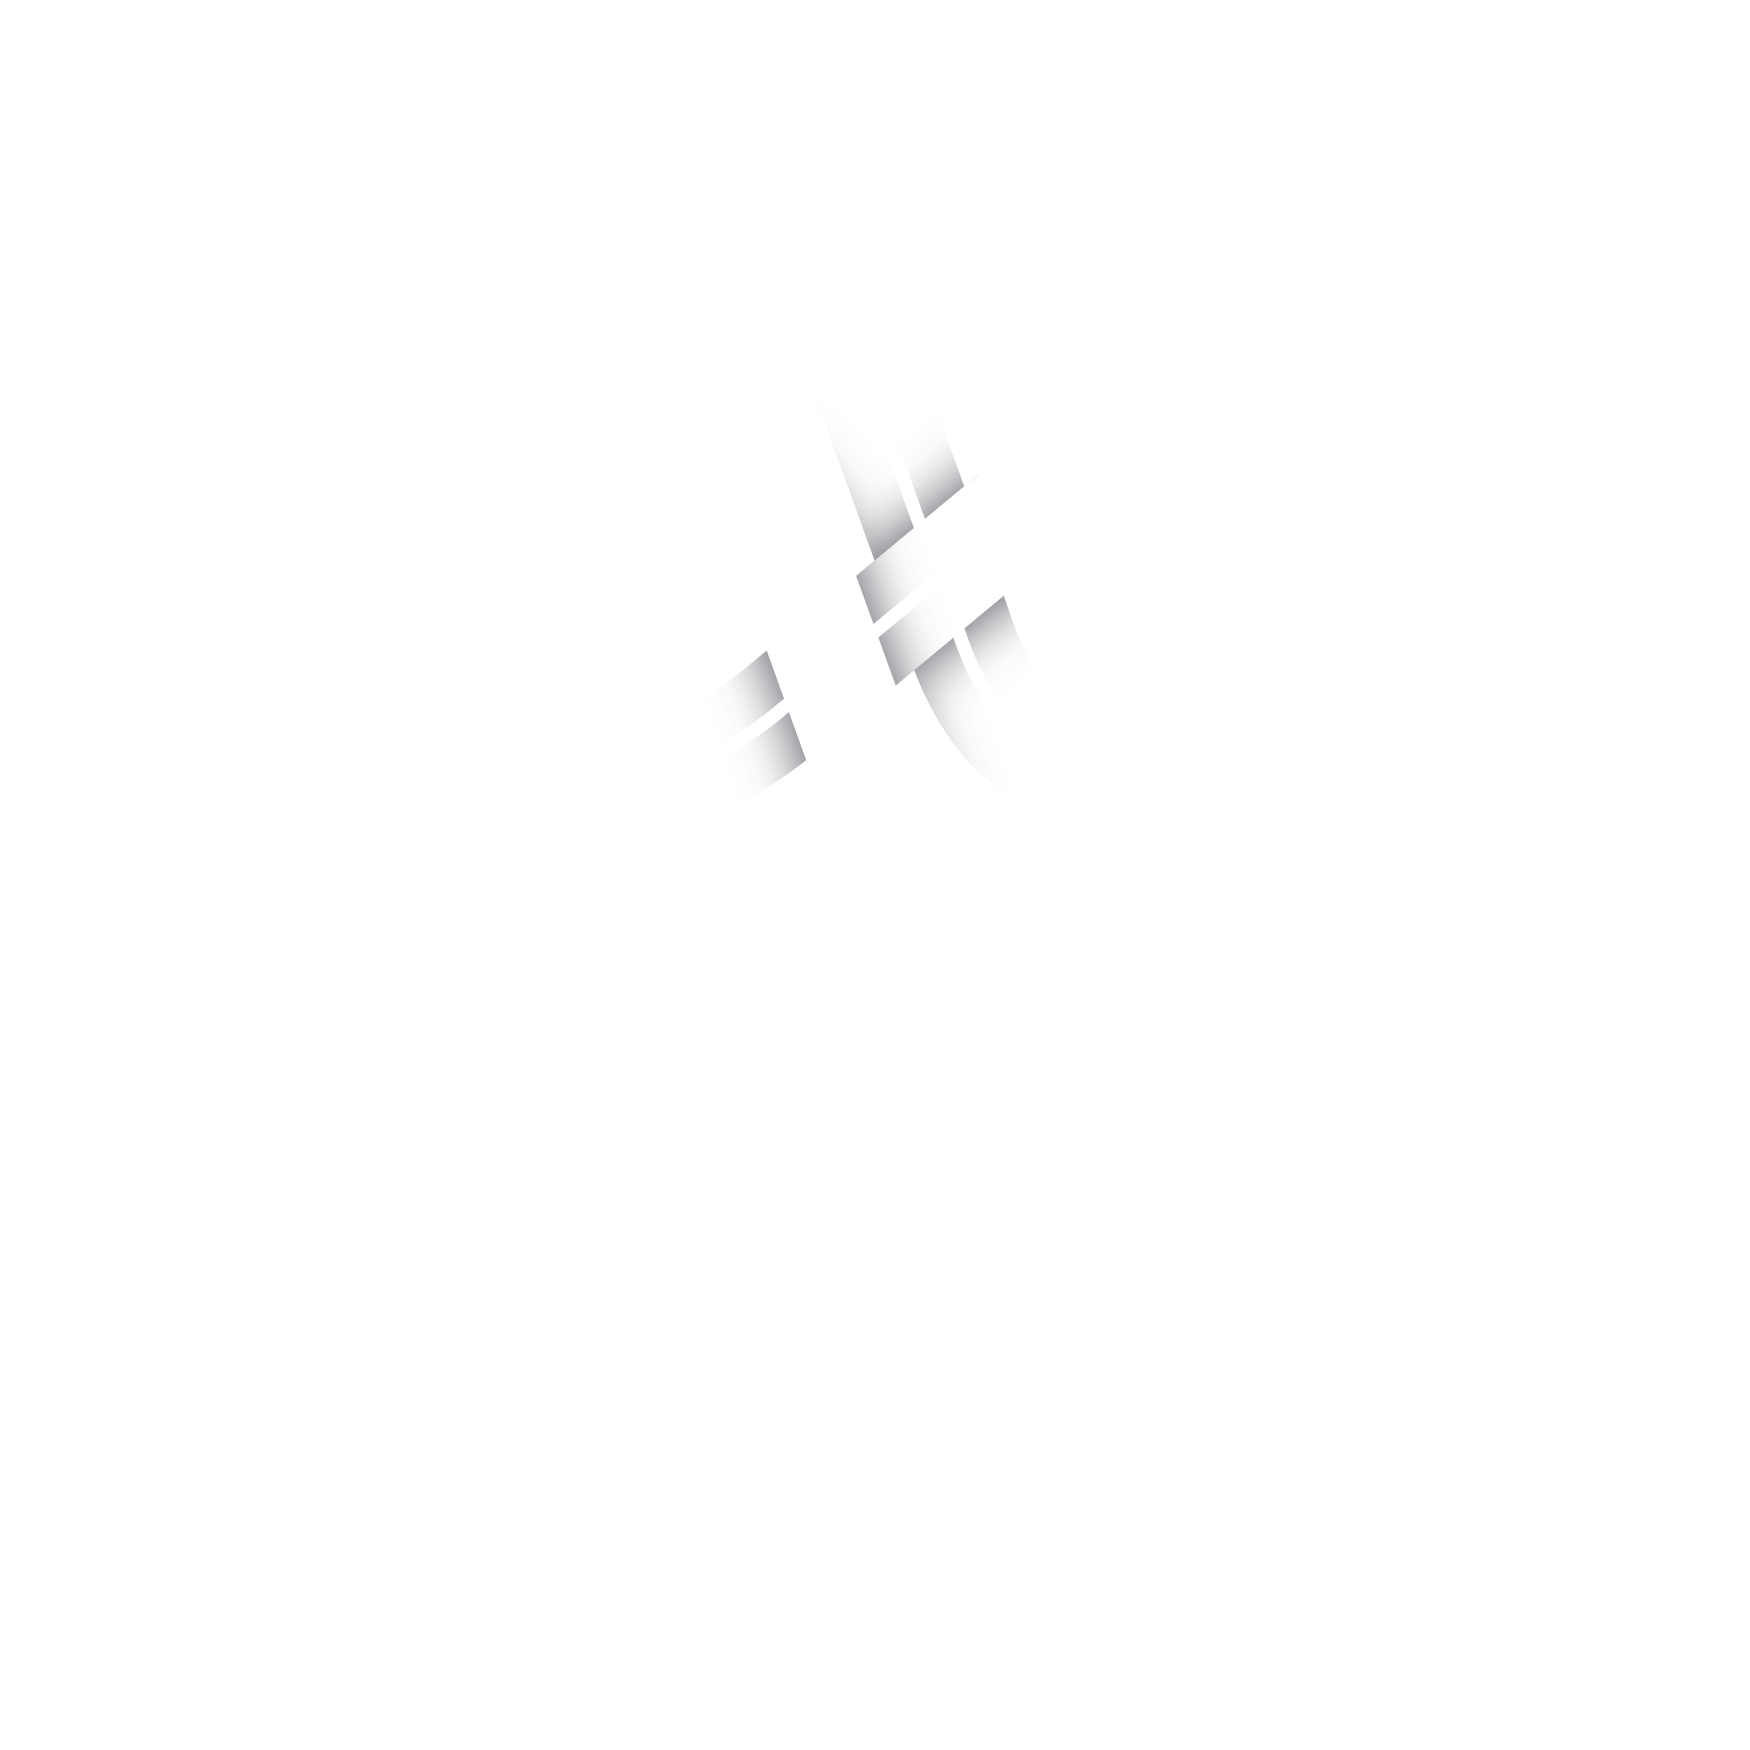 jbc-resale-white-stacked